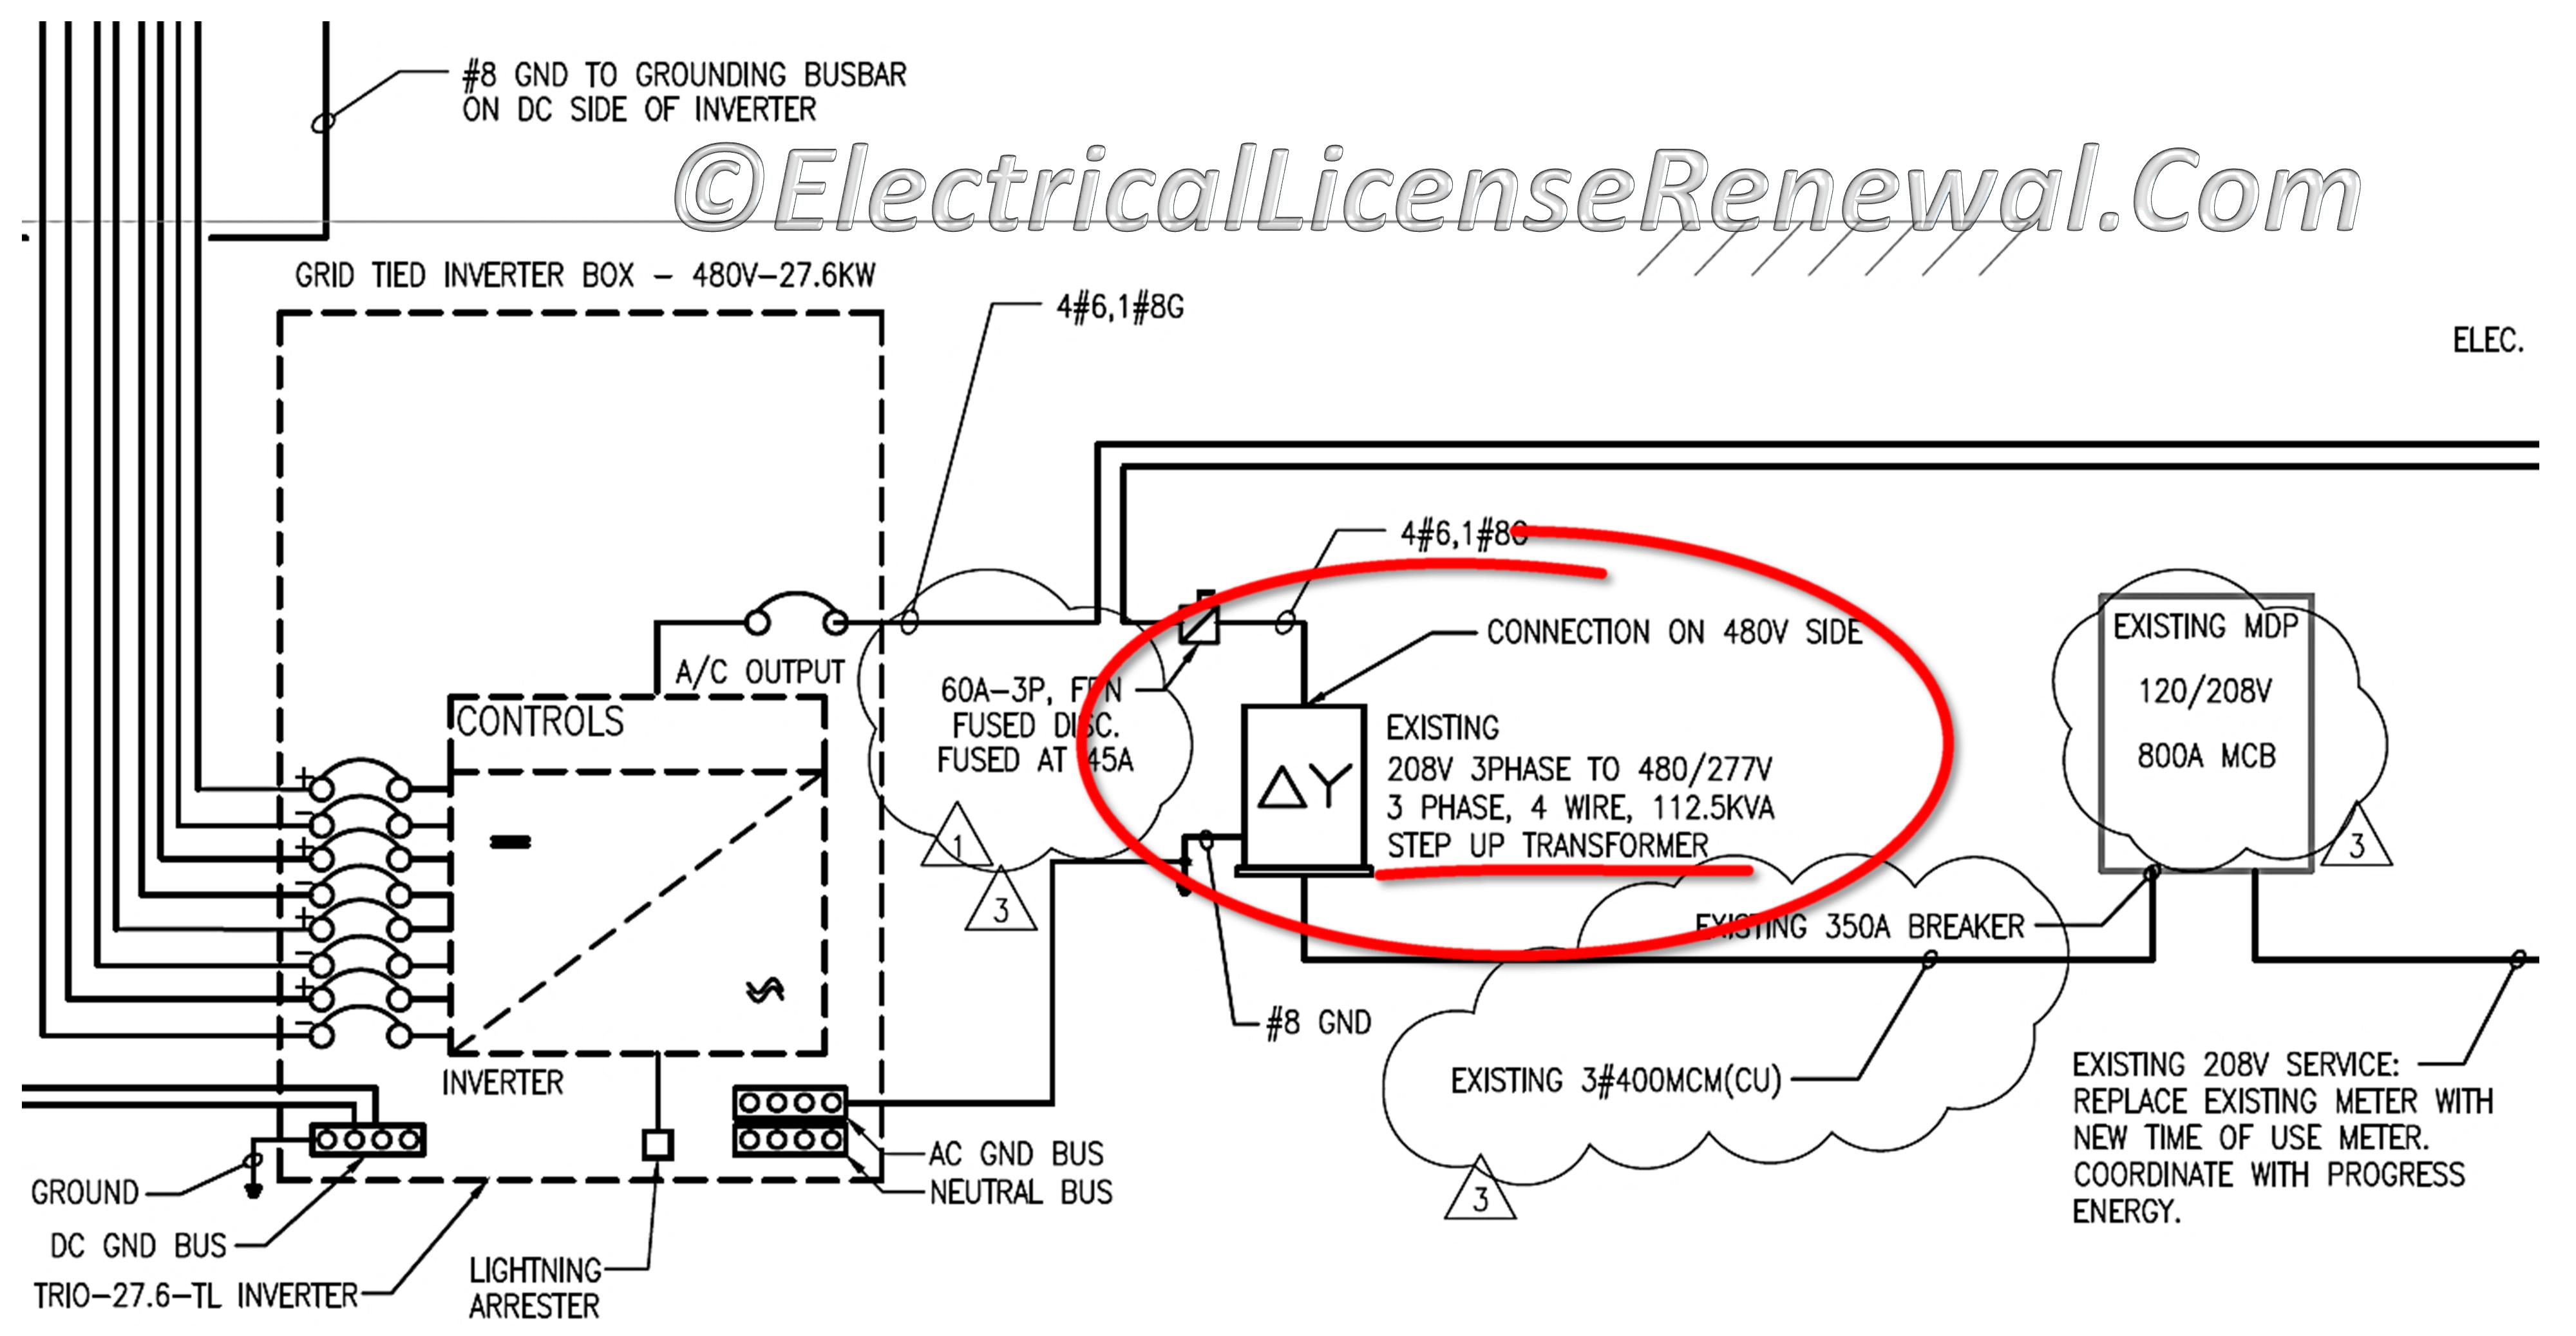 Down Transformer Wiring Diagram On 480v 3 Pole 4 Wire Wiring Diagram